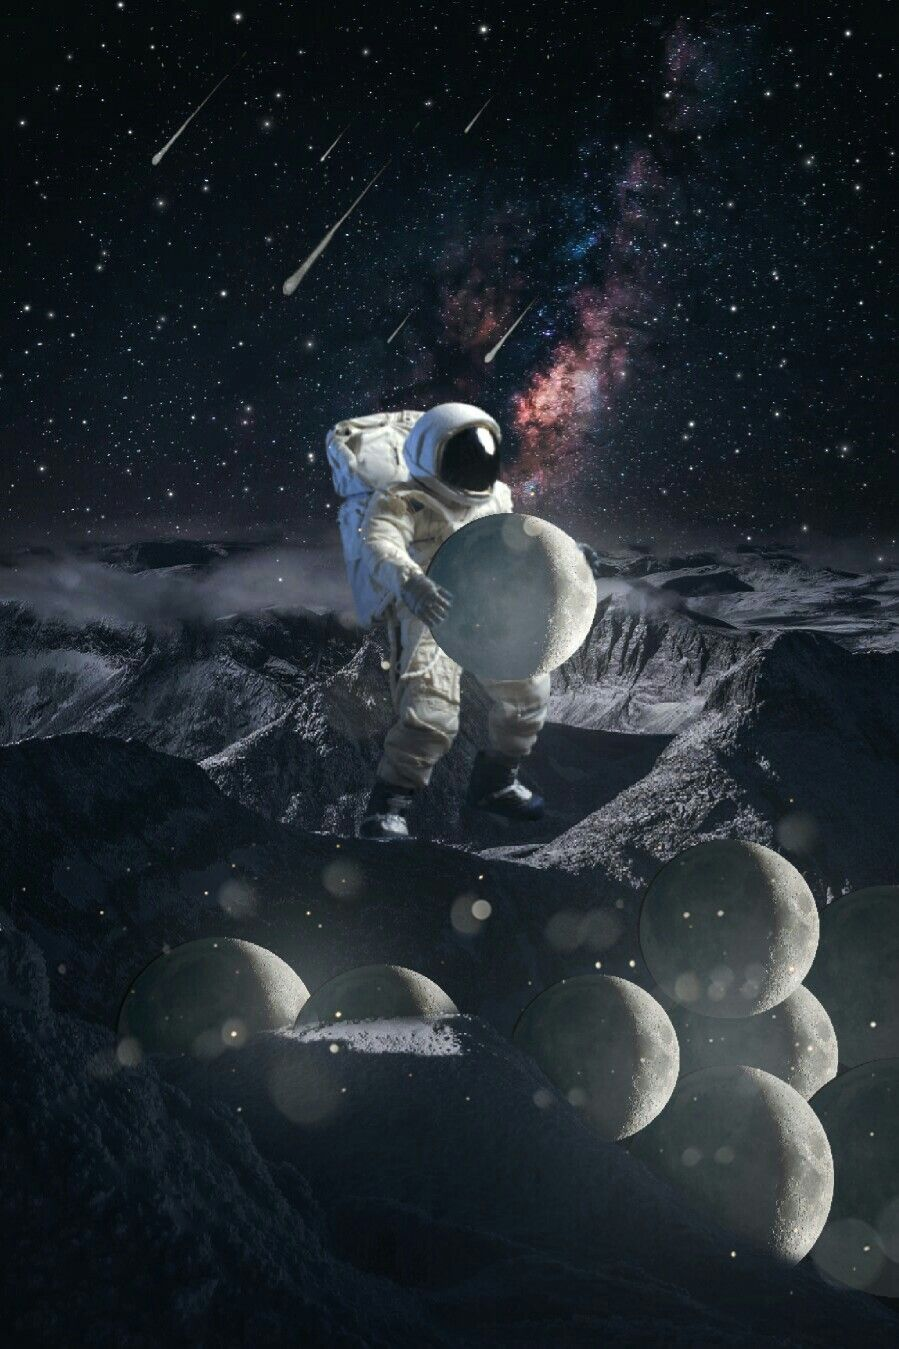 #freetoedit  #astronaut #collecting moons #vipbrushtool